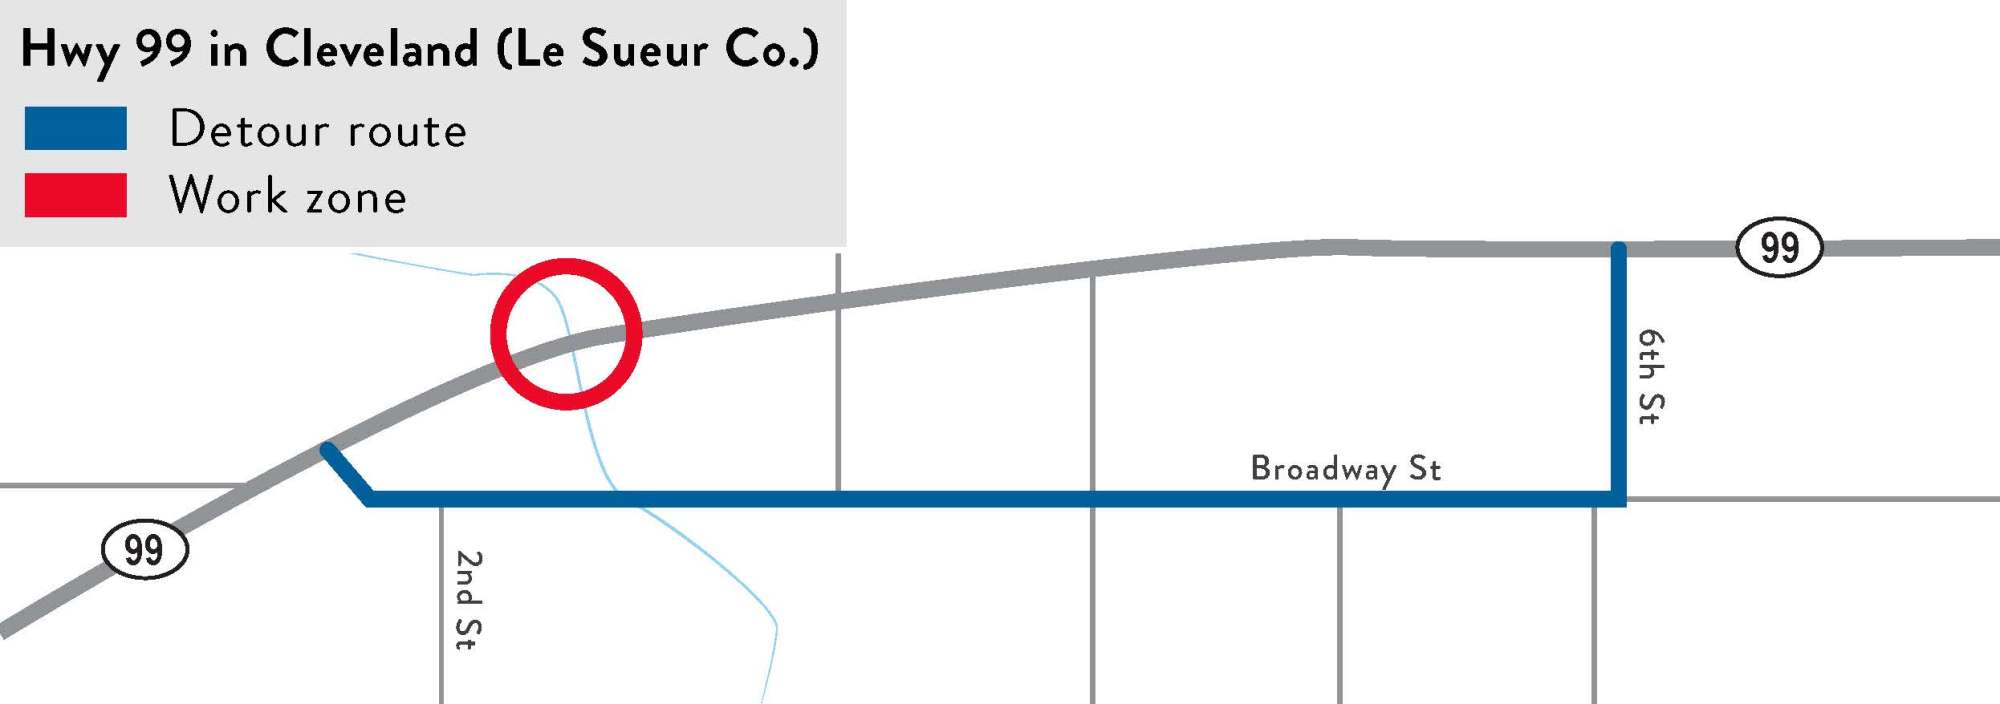 hight resolution of hwy 99 from the minnesota river bridge to le sueur county rd 38